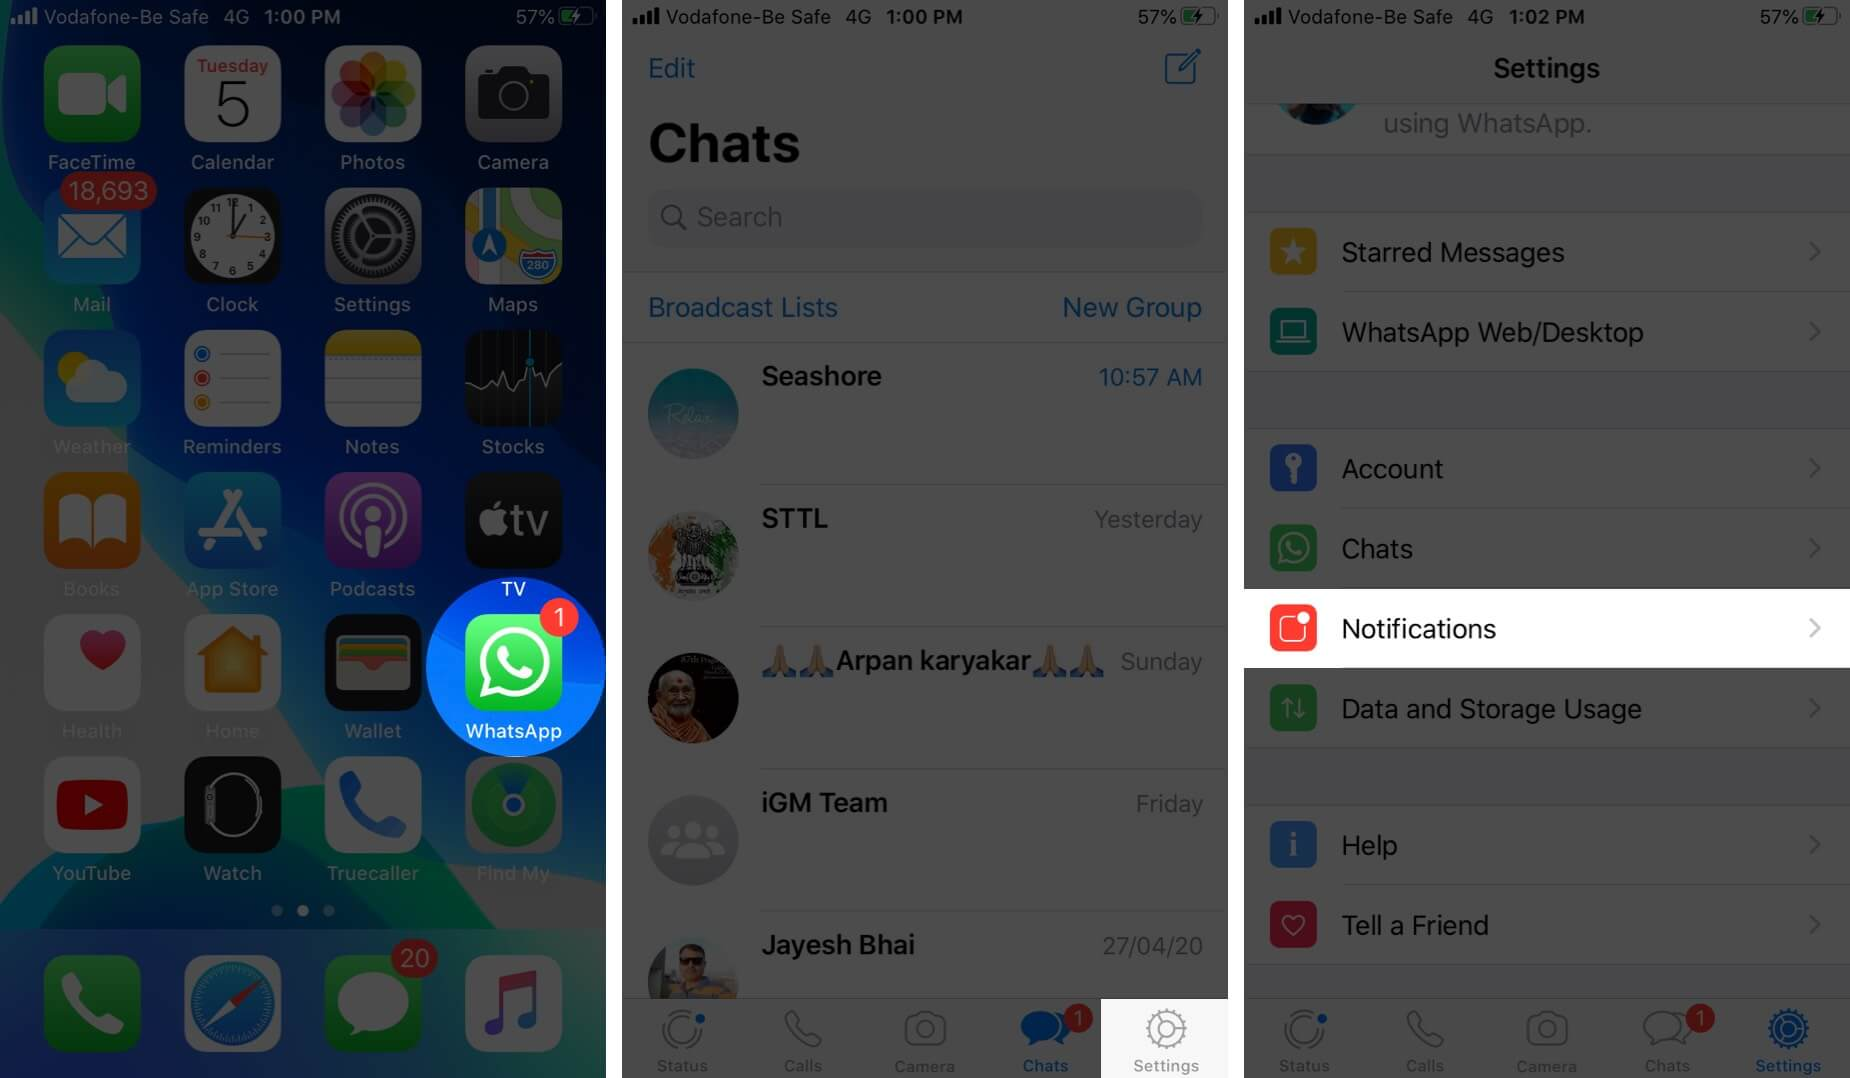 Open WhatsApp Tap on Settings and Then Tap on Notifications